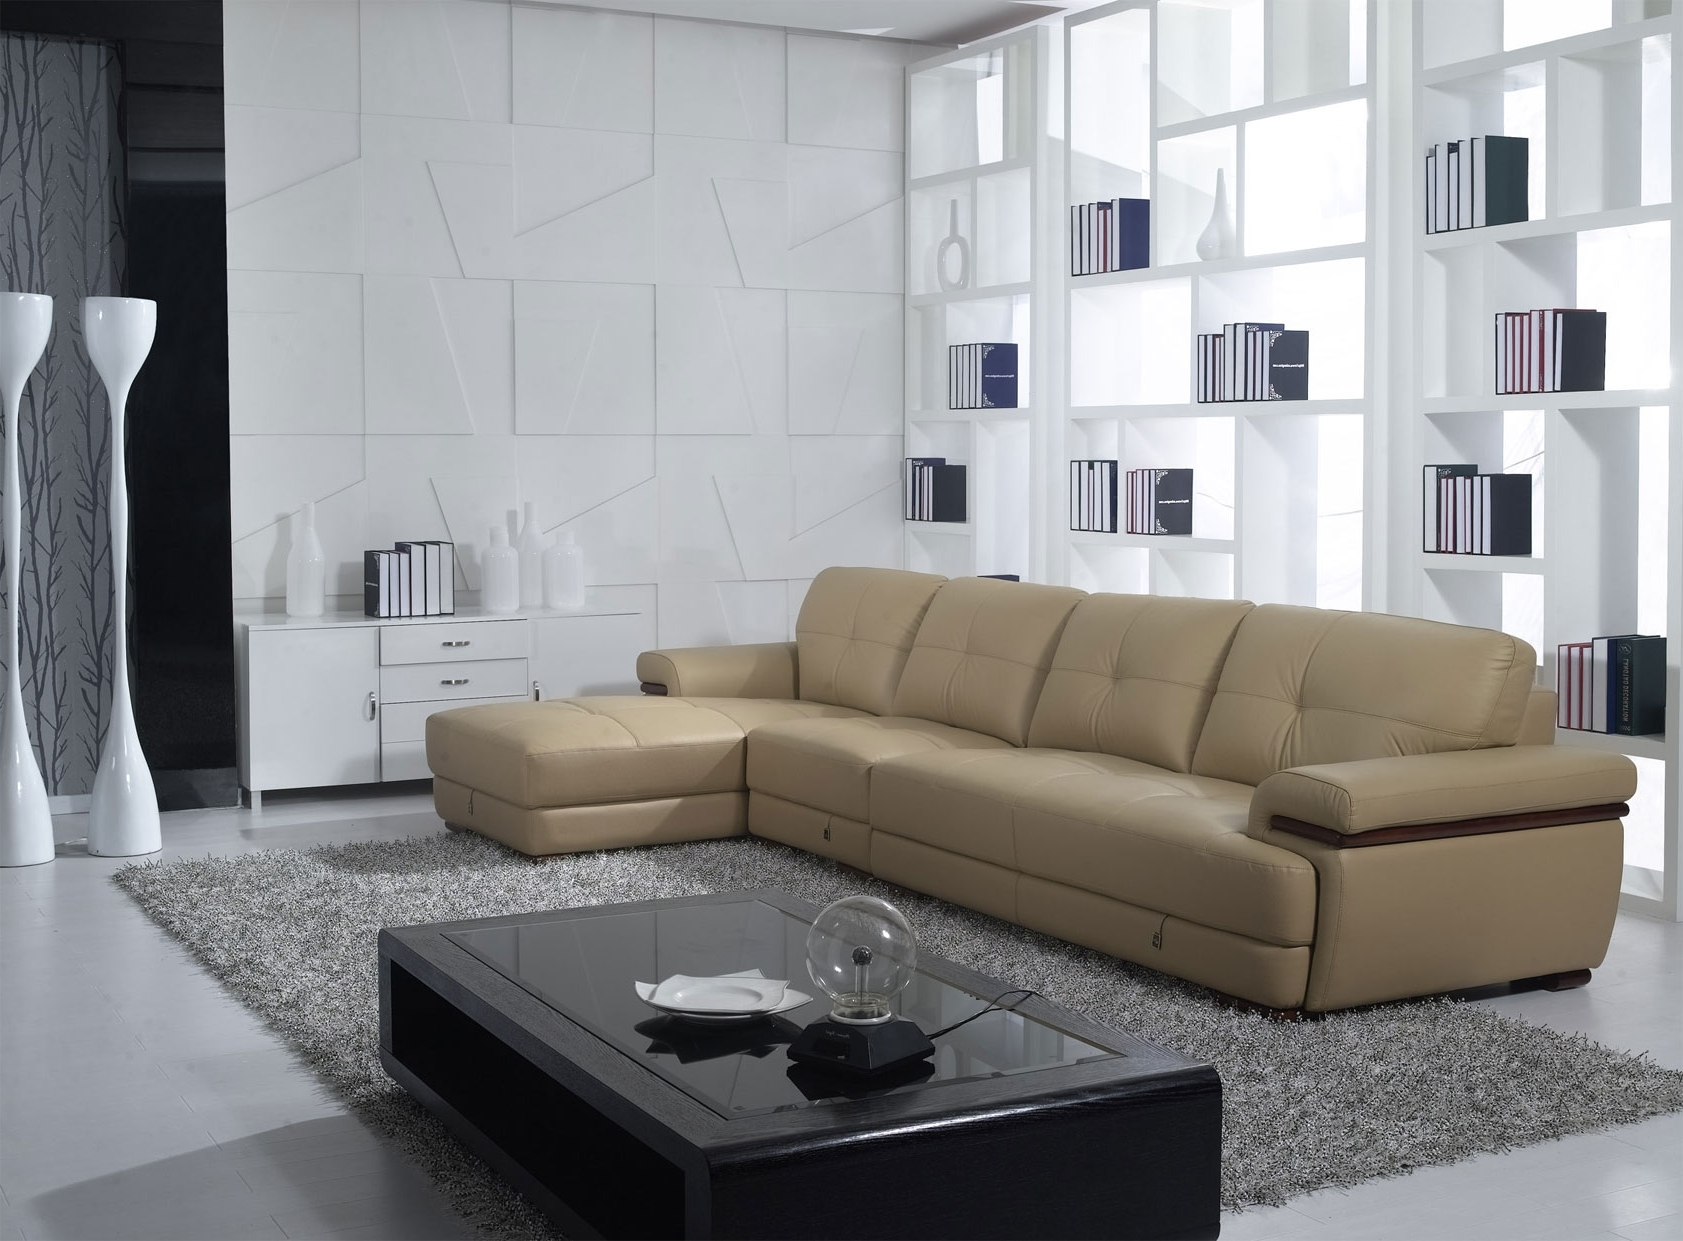 Preferred Fancy Quality Sectional Sofas 15 Sofas And Couches Ideas With In Quality Sectional Sofas (View 2 of 15)